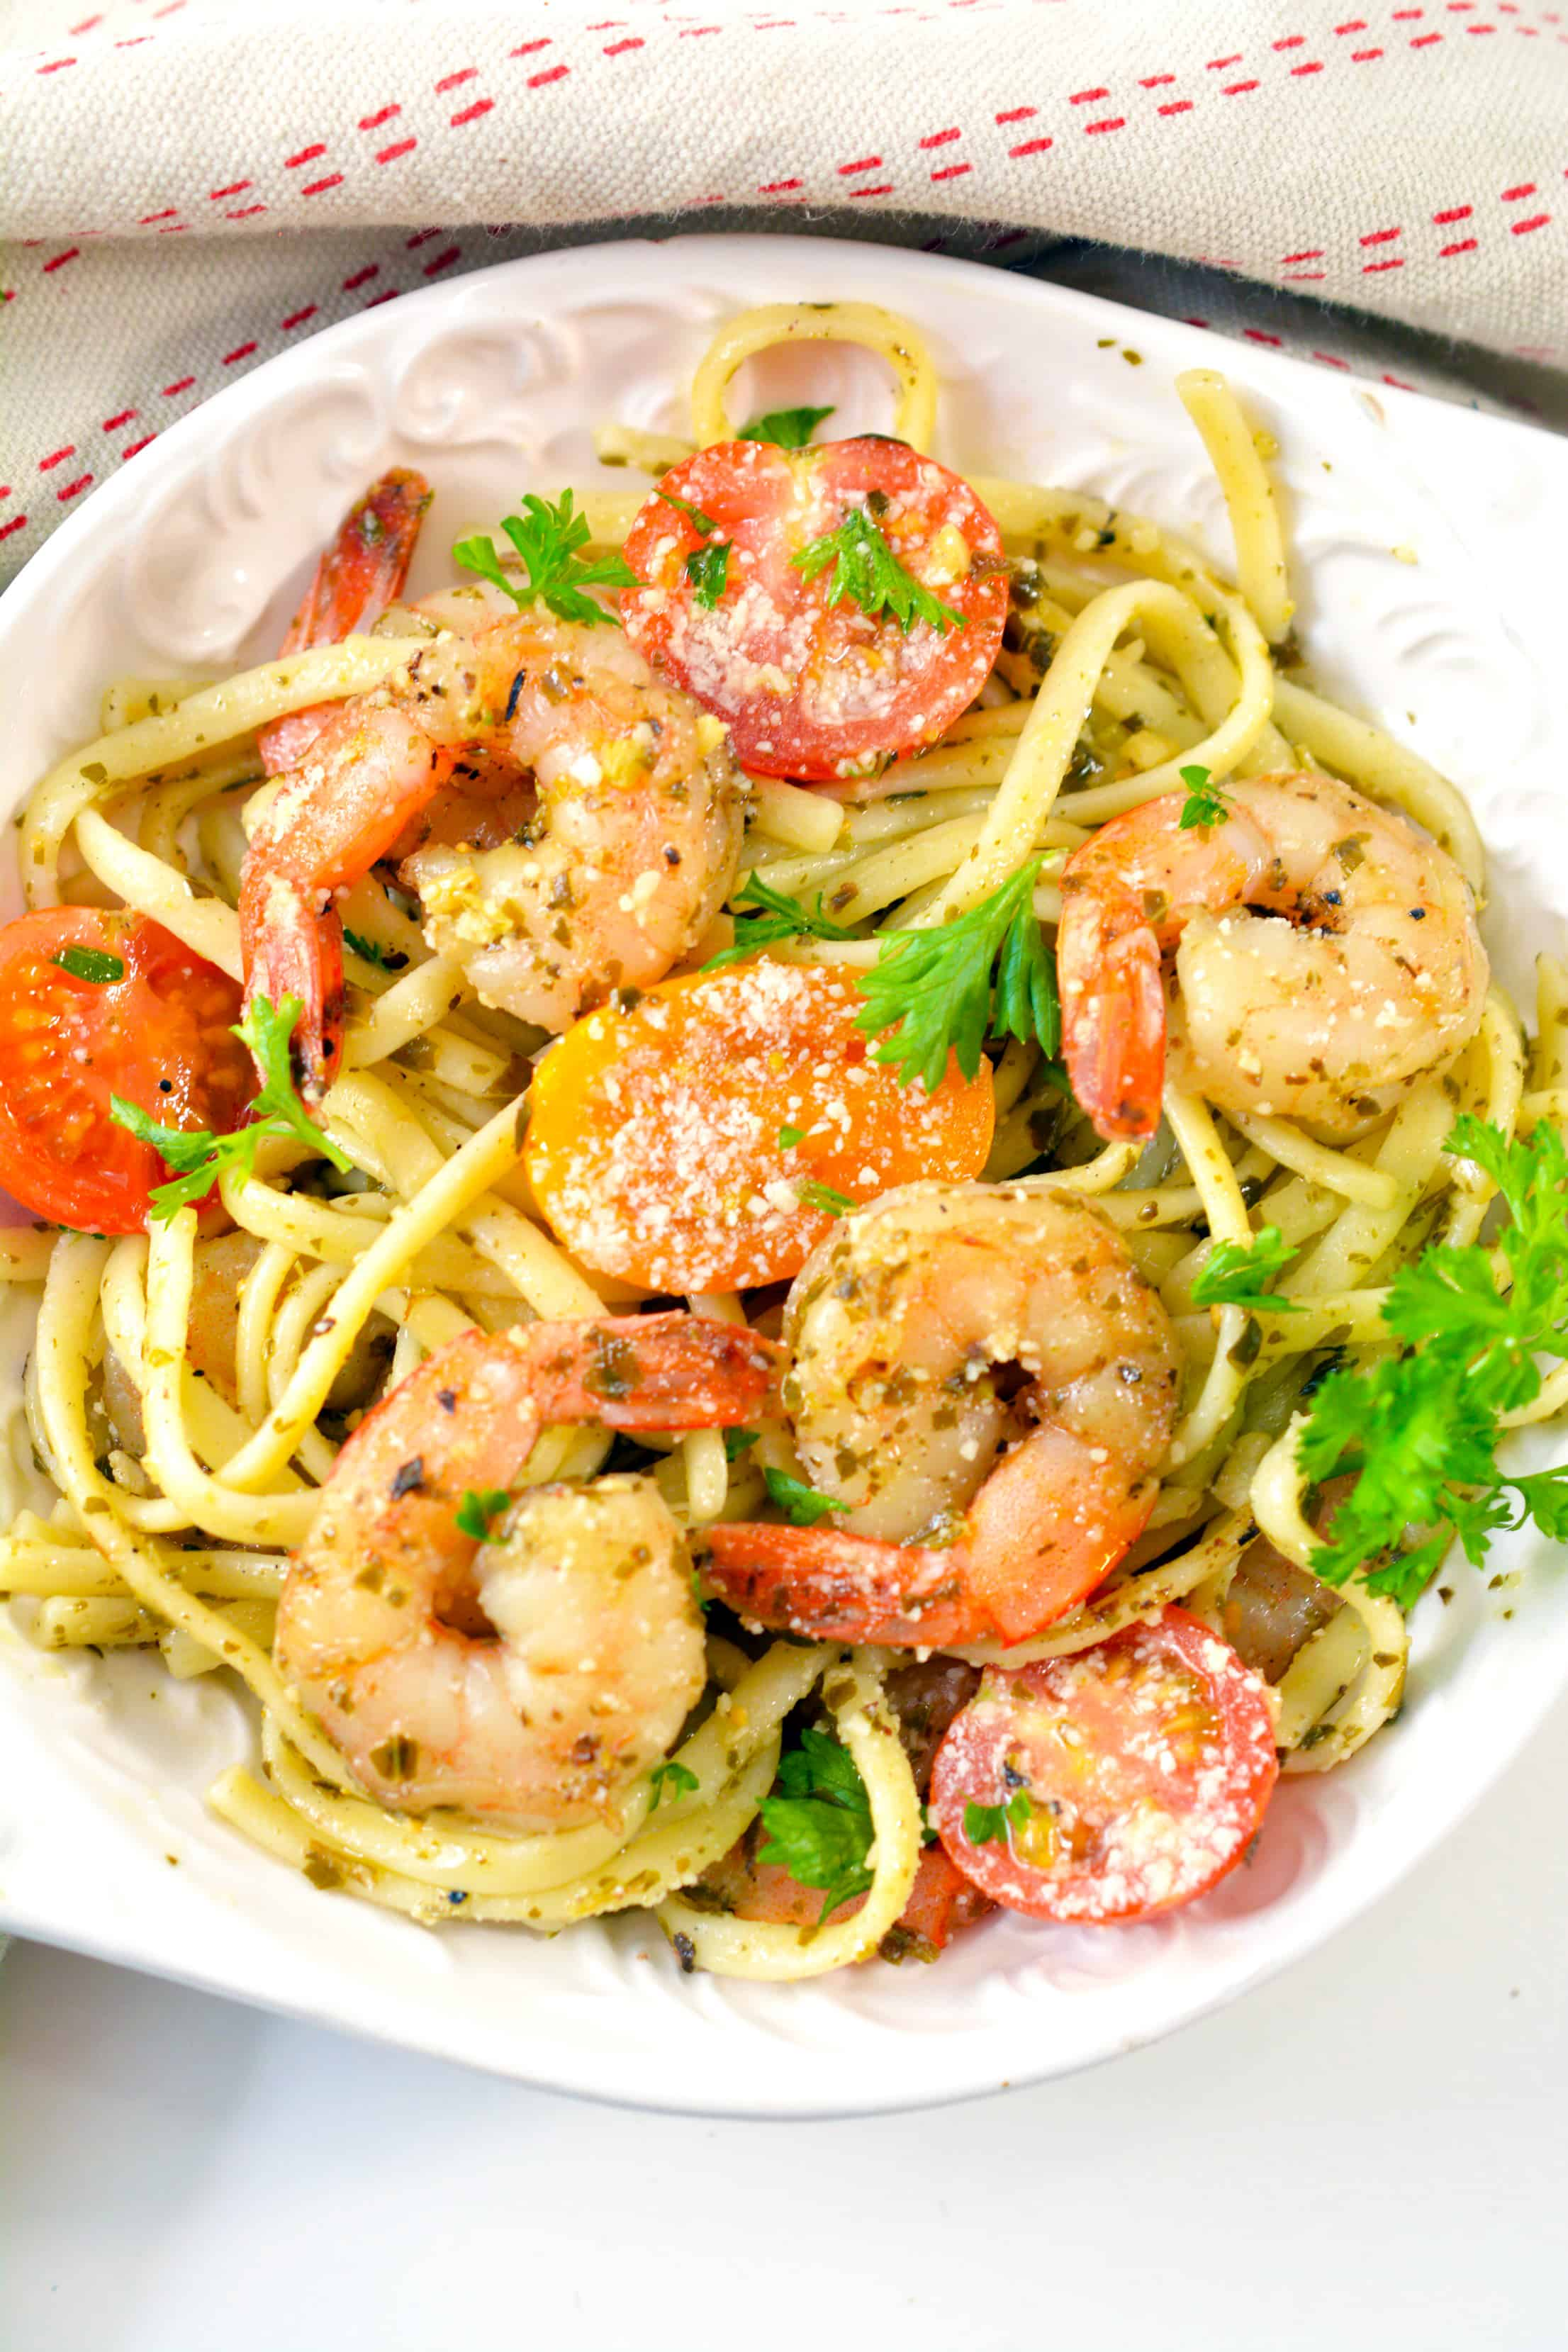 Shrimp Pesto Pasta on a plate